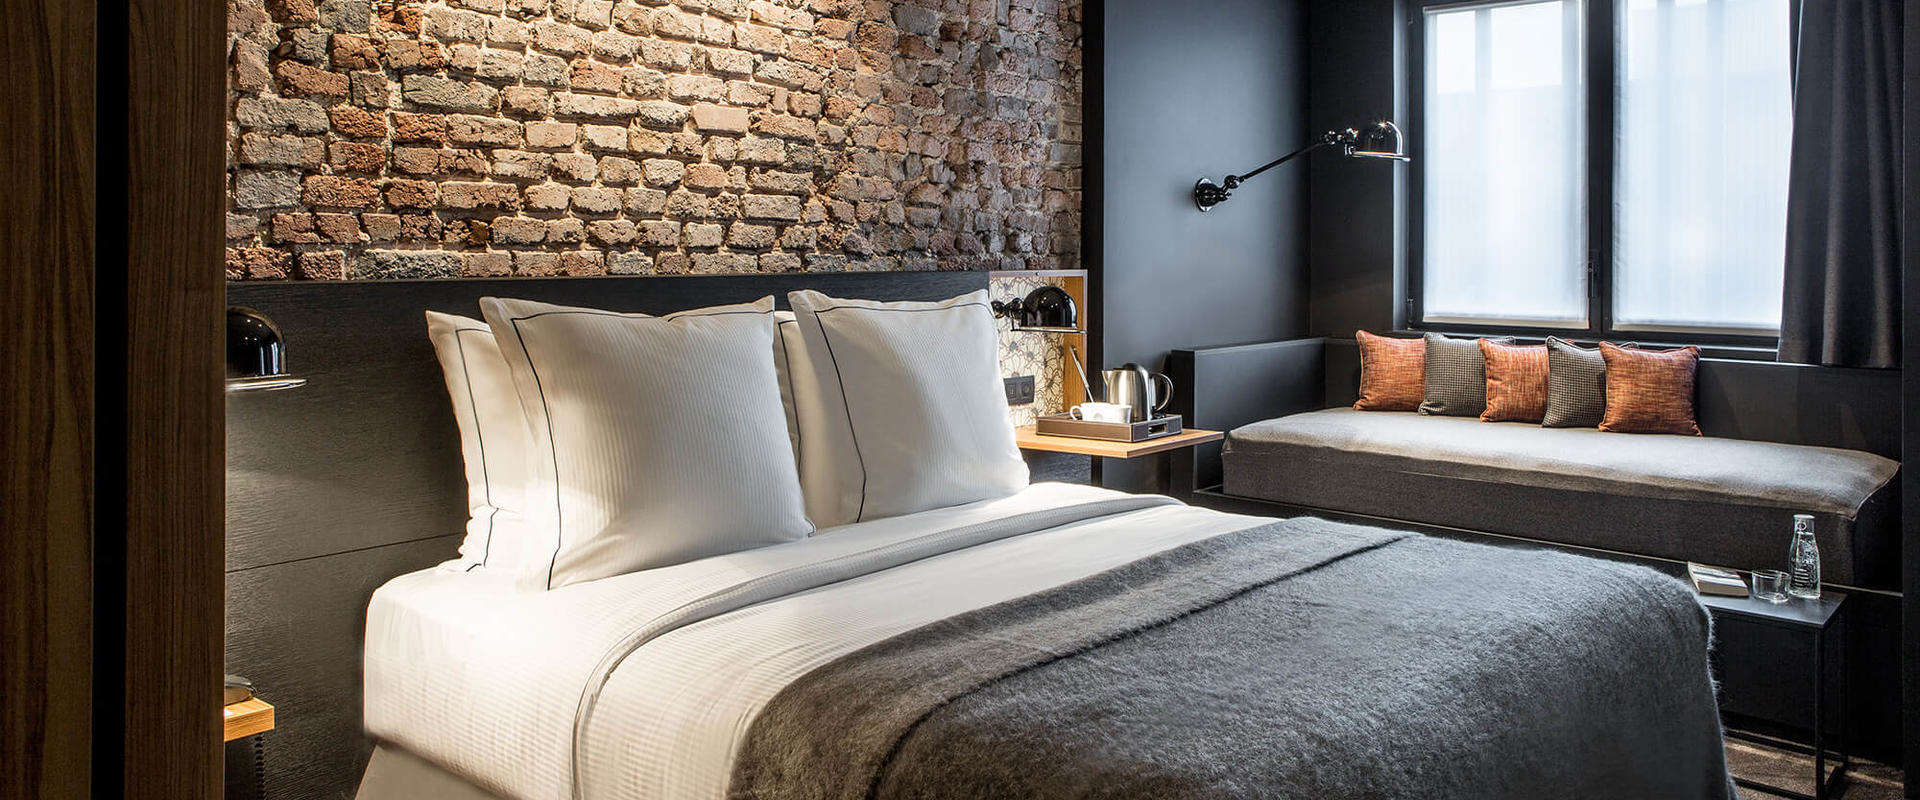 QUALITY LINEN FOR PROFESSIONALS IN LUXURY HOSPITALITY SECTOR